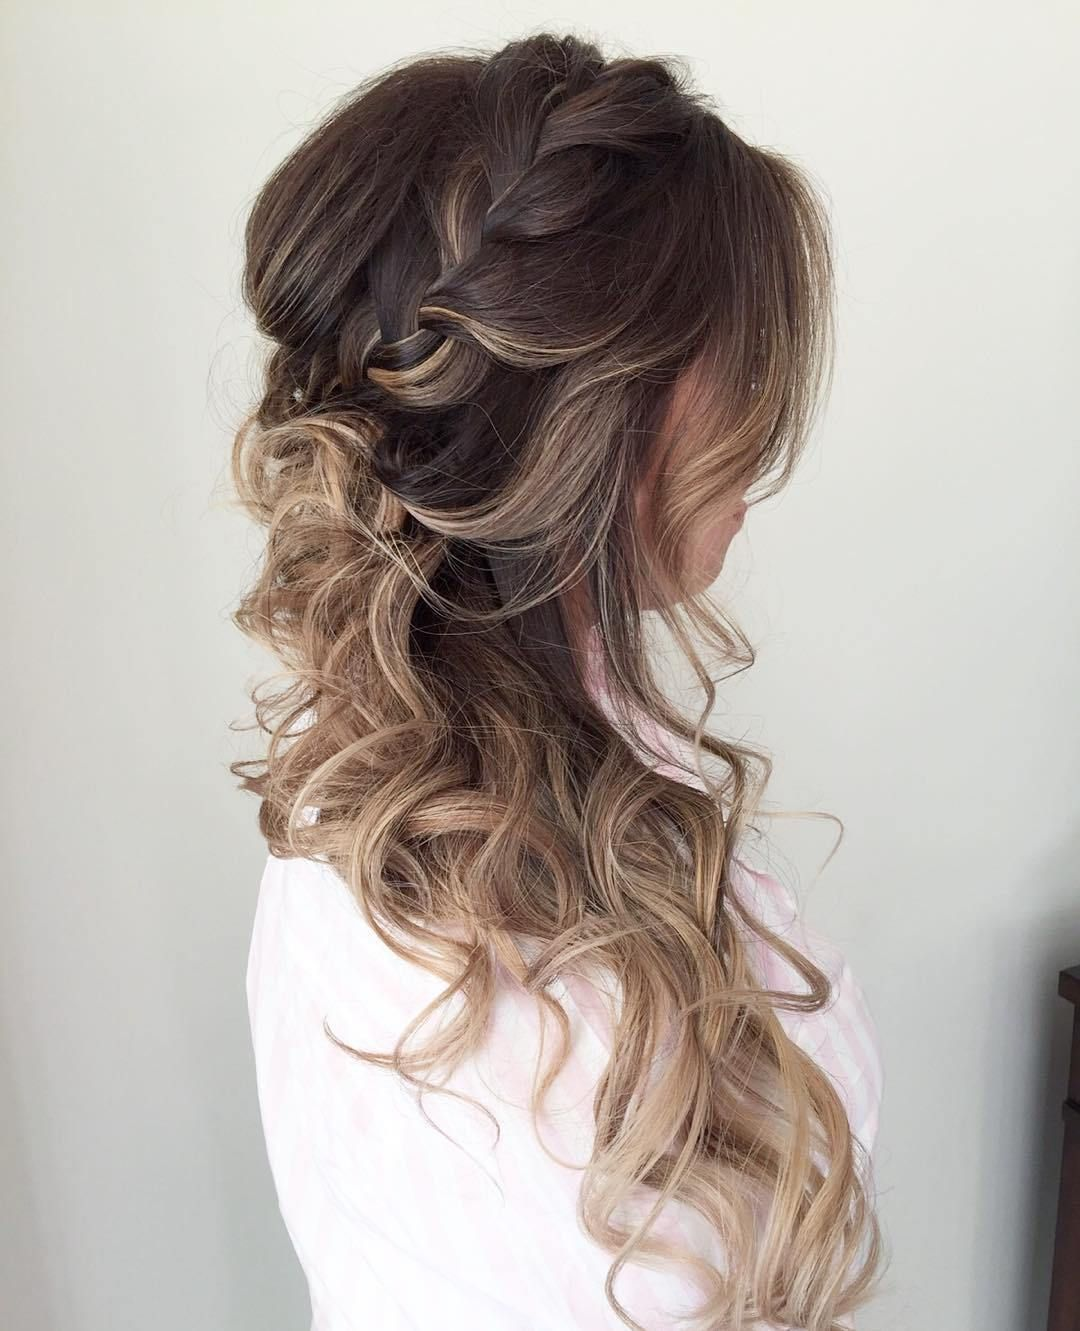 Short Hairstyles Saleprice 13 Hair Styles Prom Hairstyles For Long Hair Formal Hairstyles For Long Hair